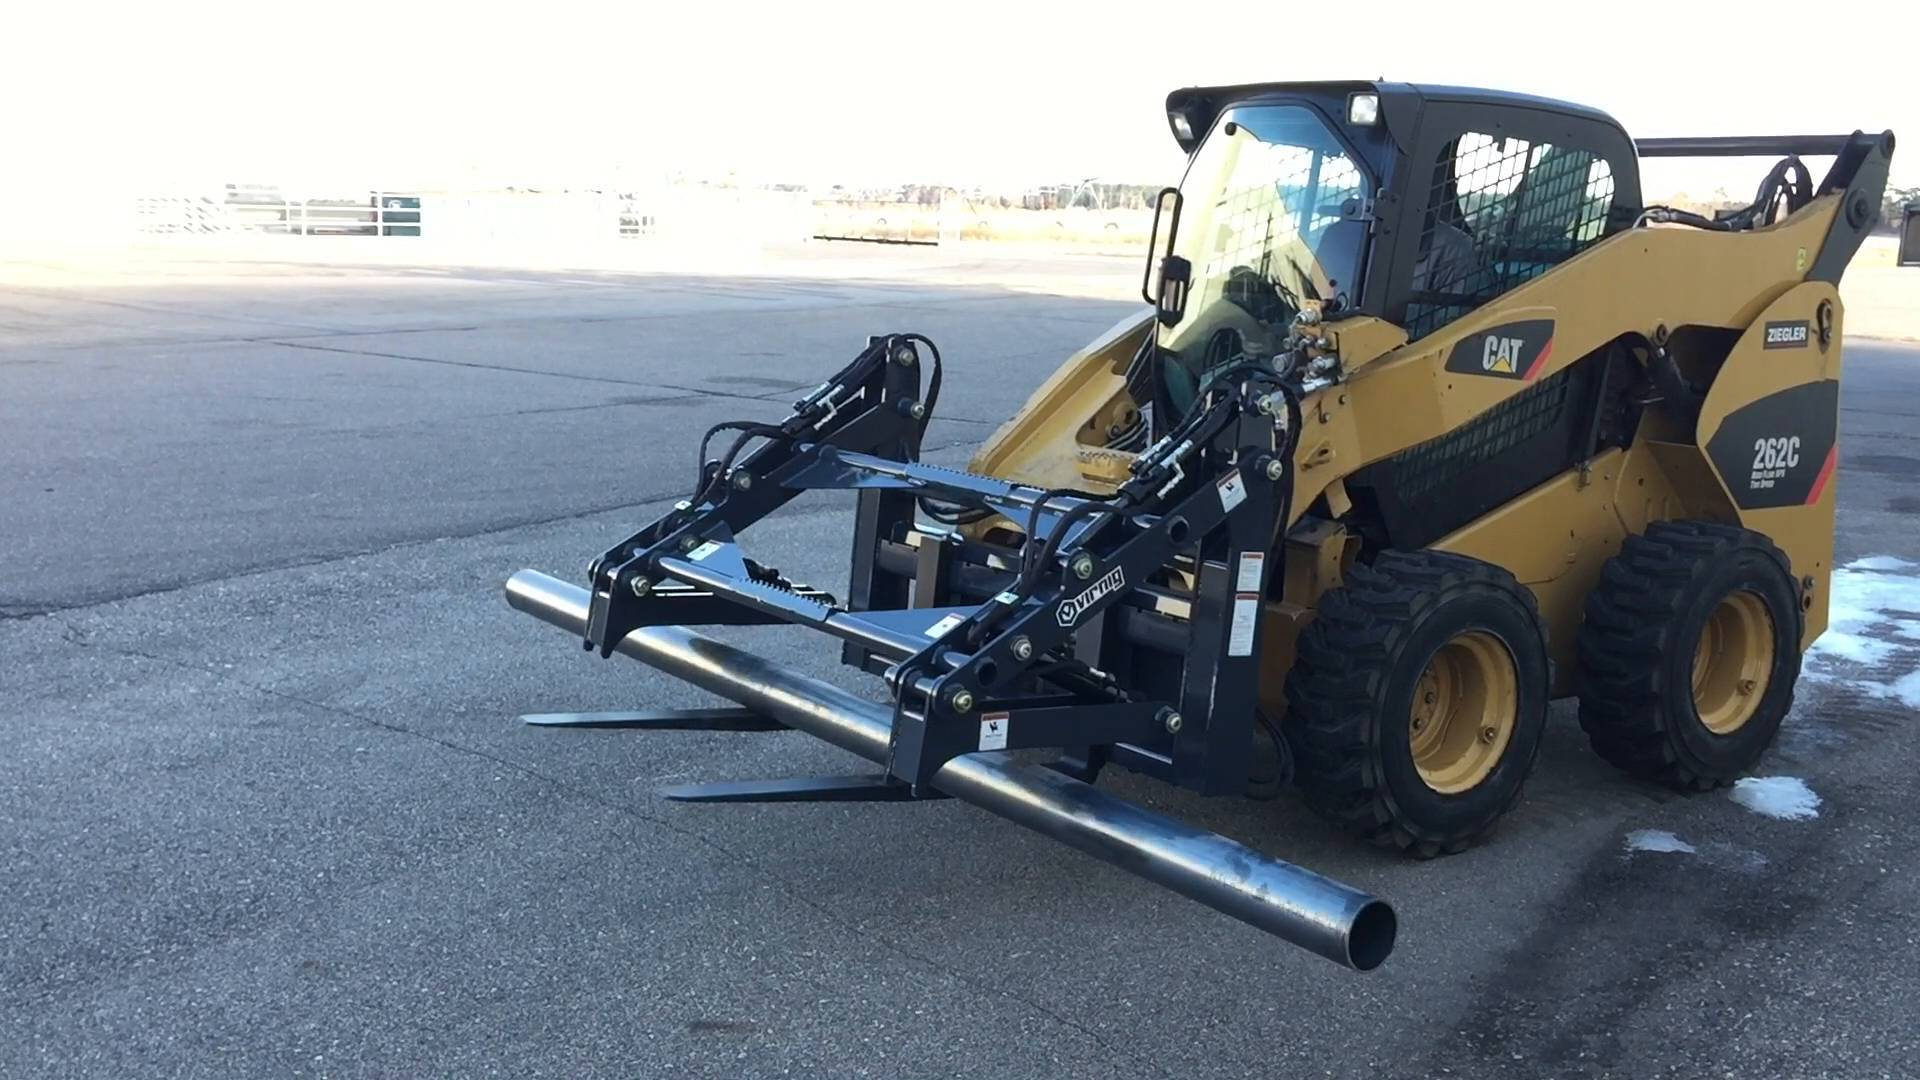 V60 Four-Cylinder Pipe Pallet Fork Grapple Attachment